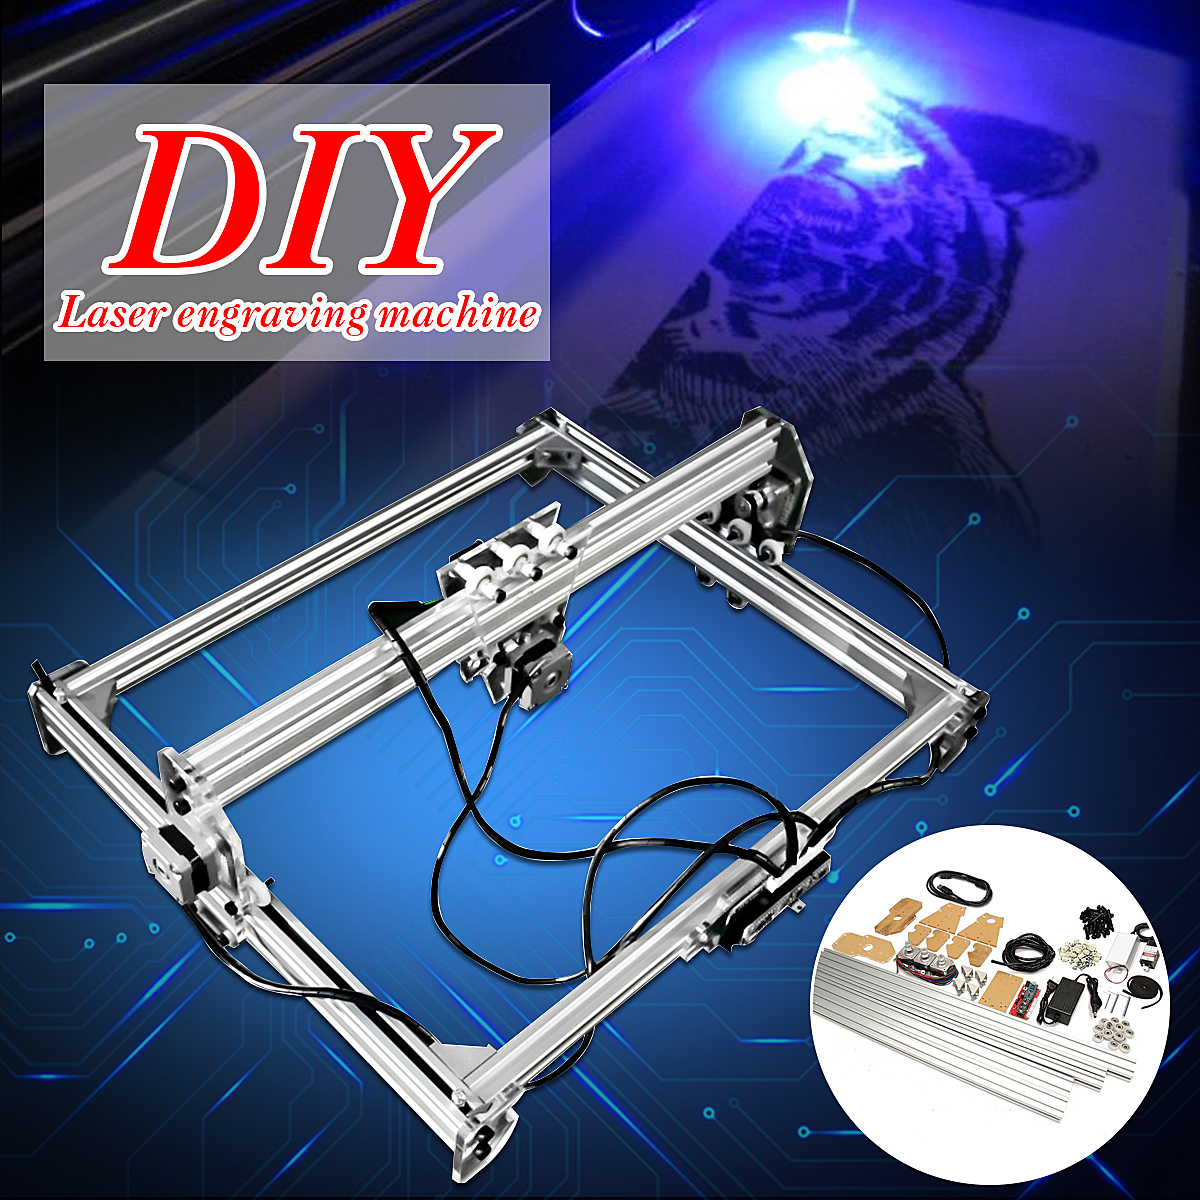 50*65cm Mini 3000MW Blue CNC Laser Engraving Machine 2Axis DC 12V DIY Engraver Desktop Wood Router/Cutter/Printer+ Laser(China)